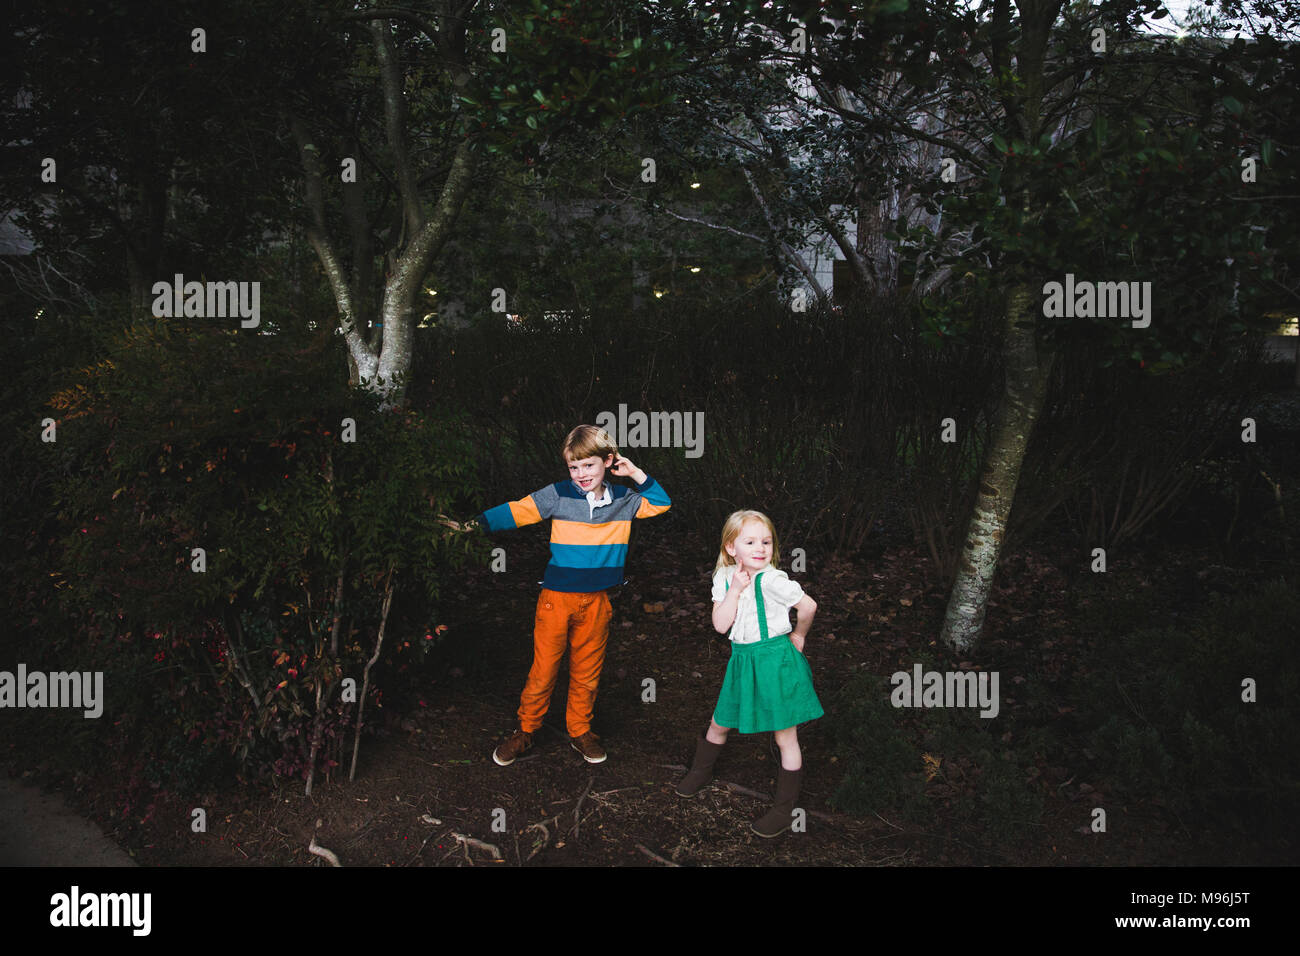 Two children playing in the woods - Stock Image